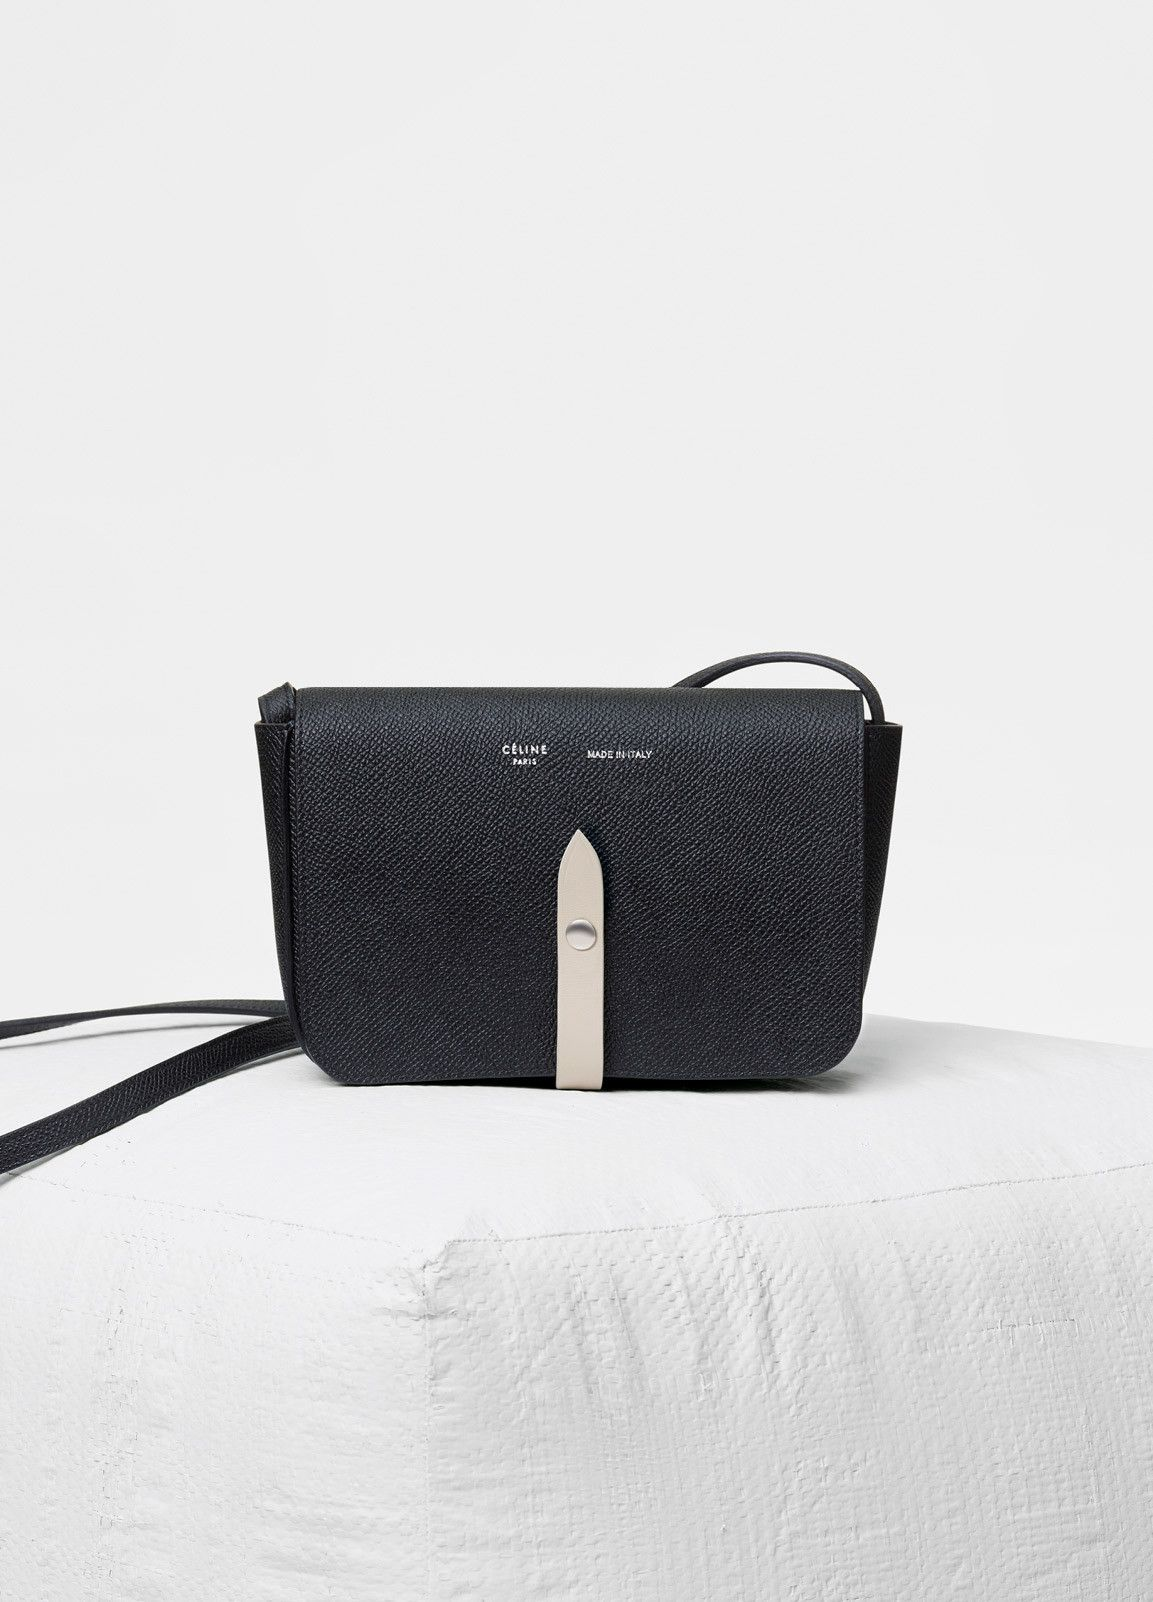 Strap clutch in grained and shiny calfskin - セリーヌについて